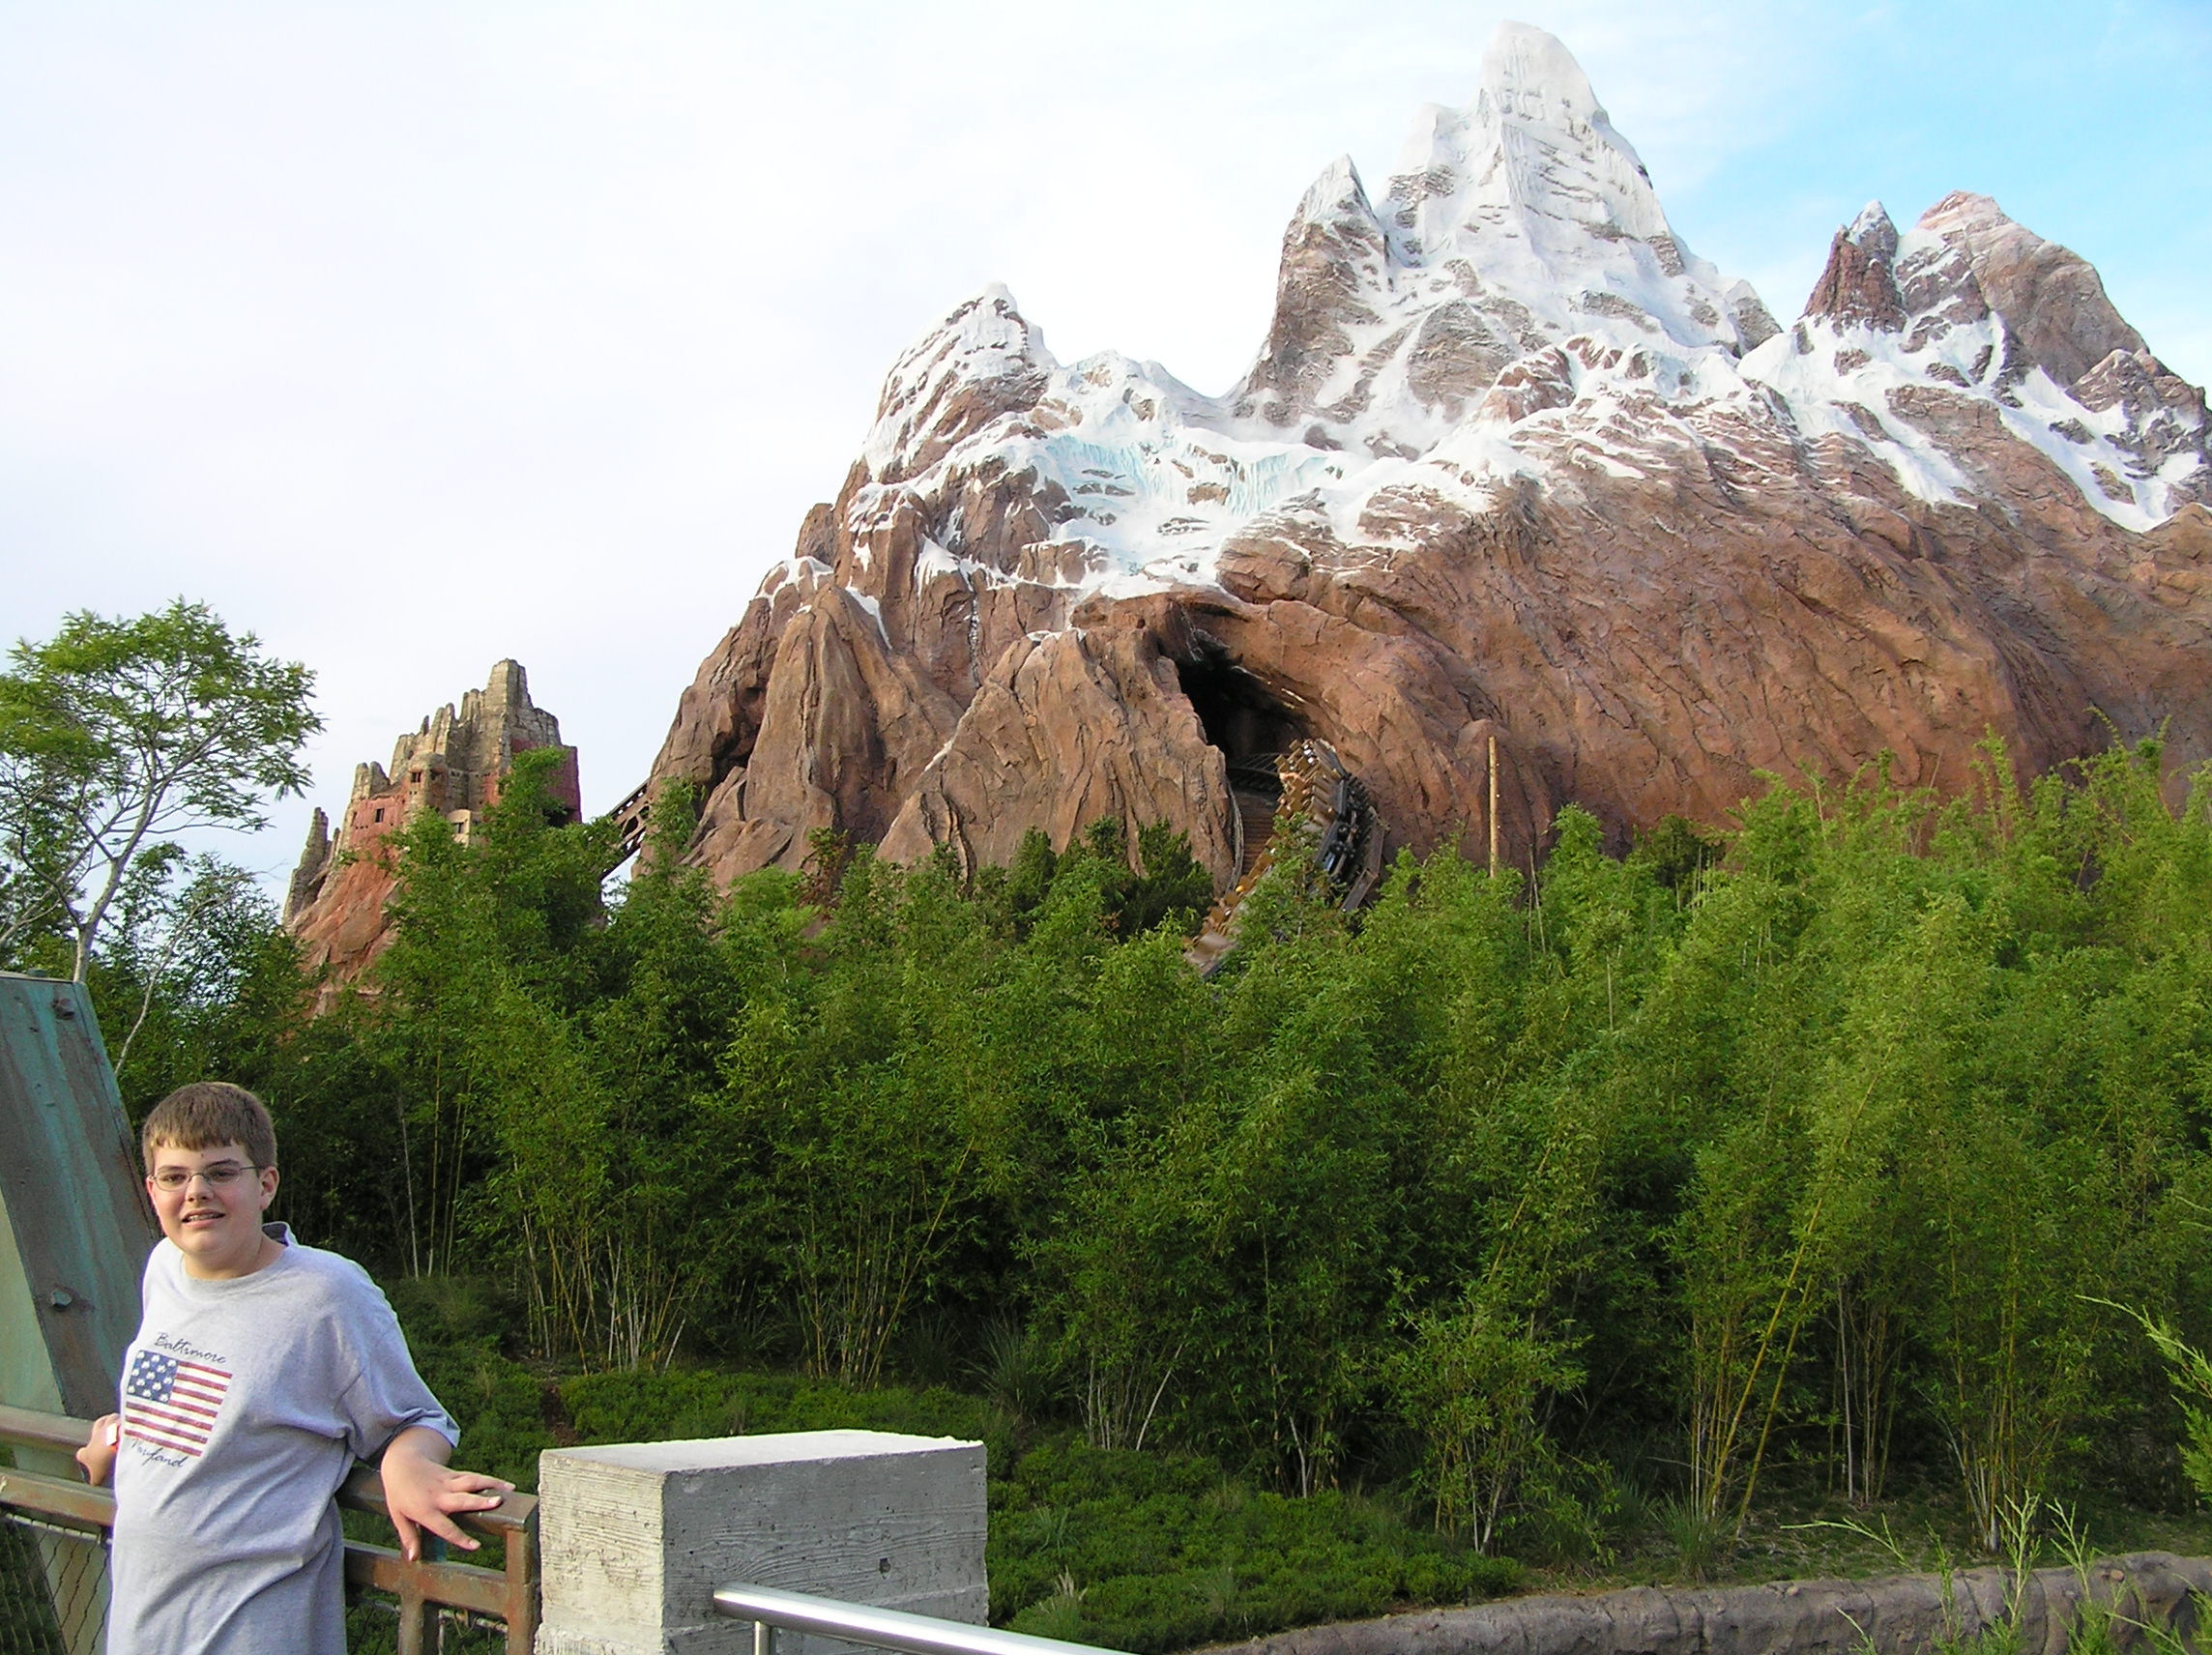 Me in front of the now-complete Expedition Everest at Disney's Animal Kingdom.